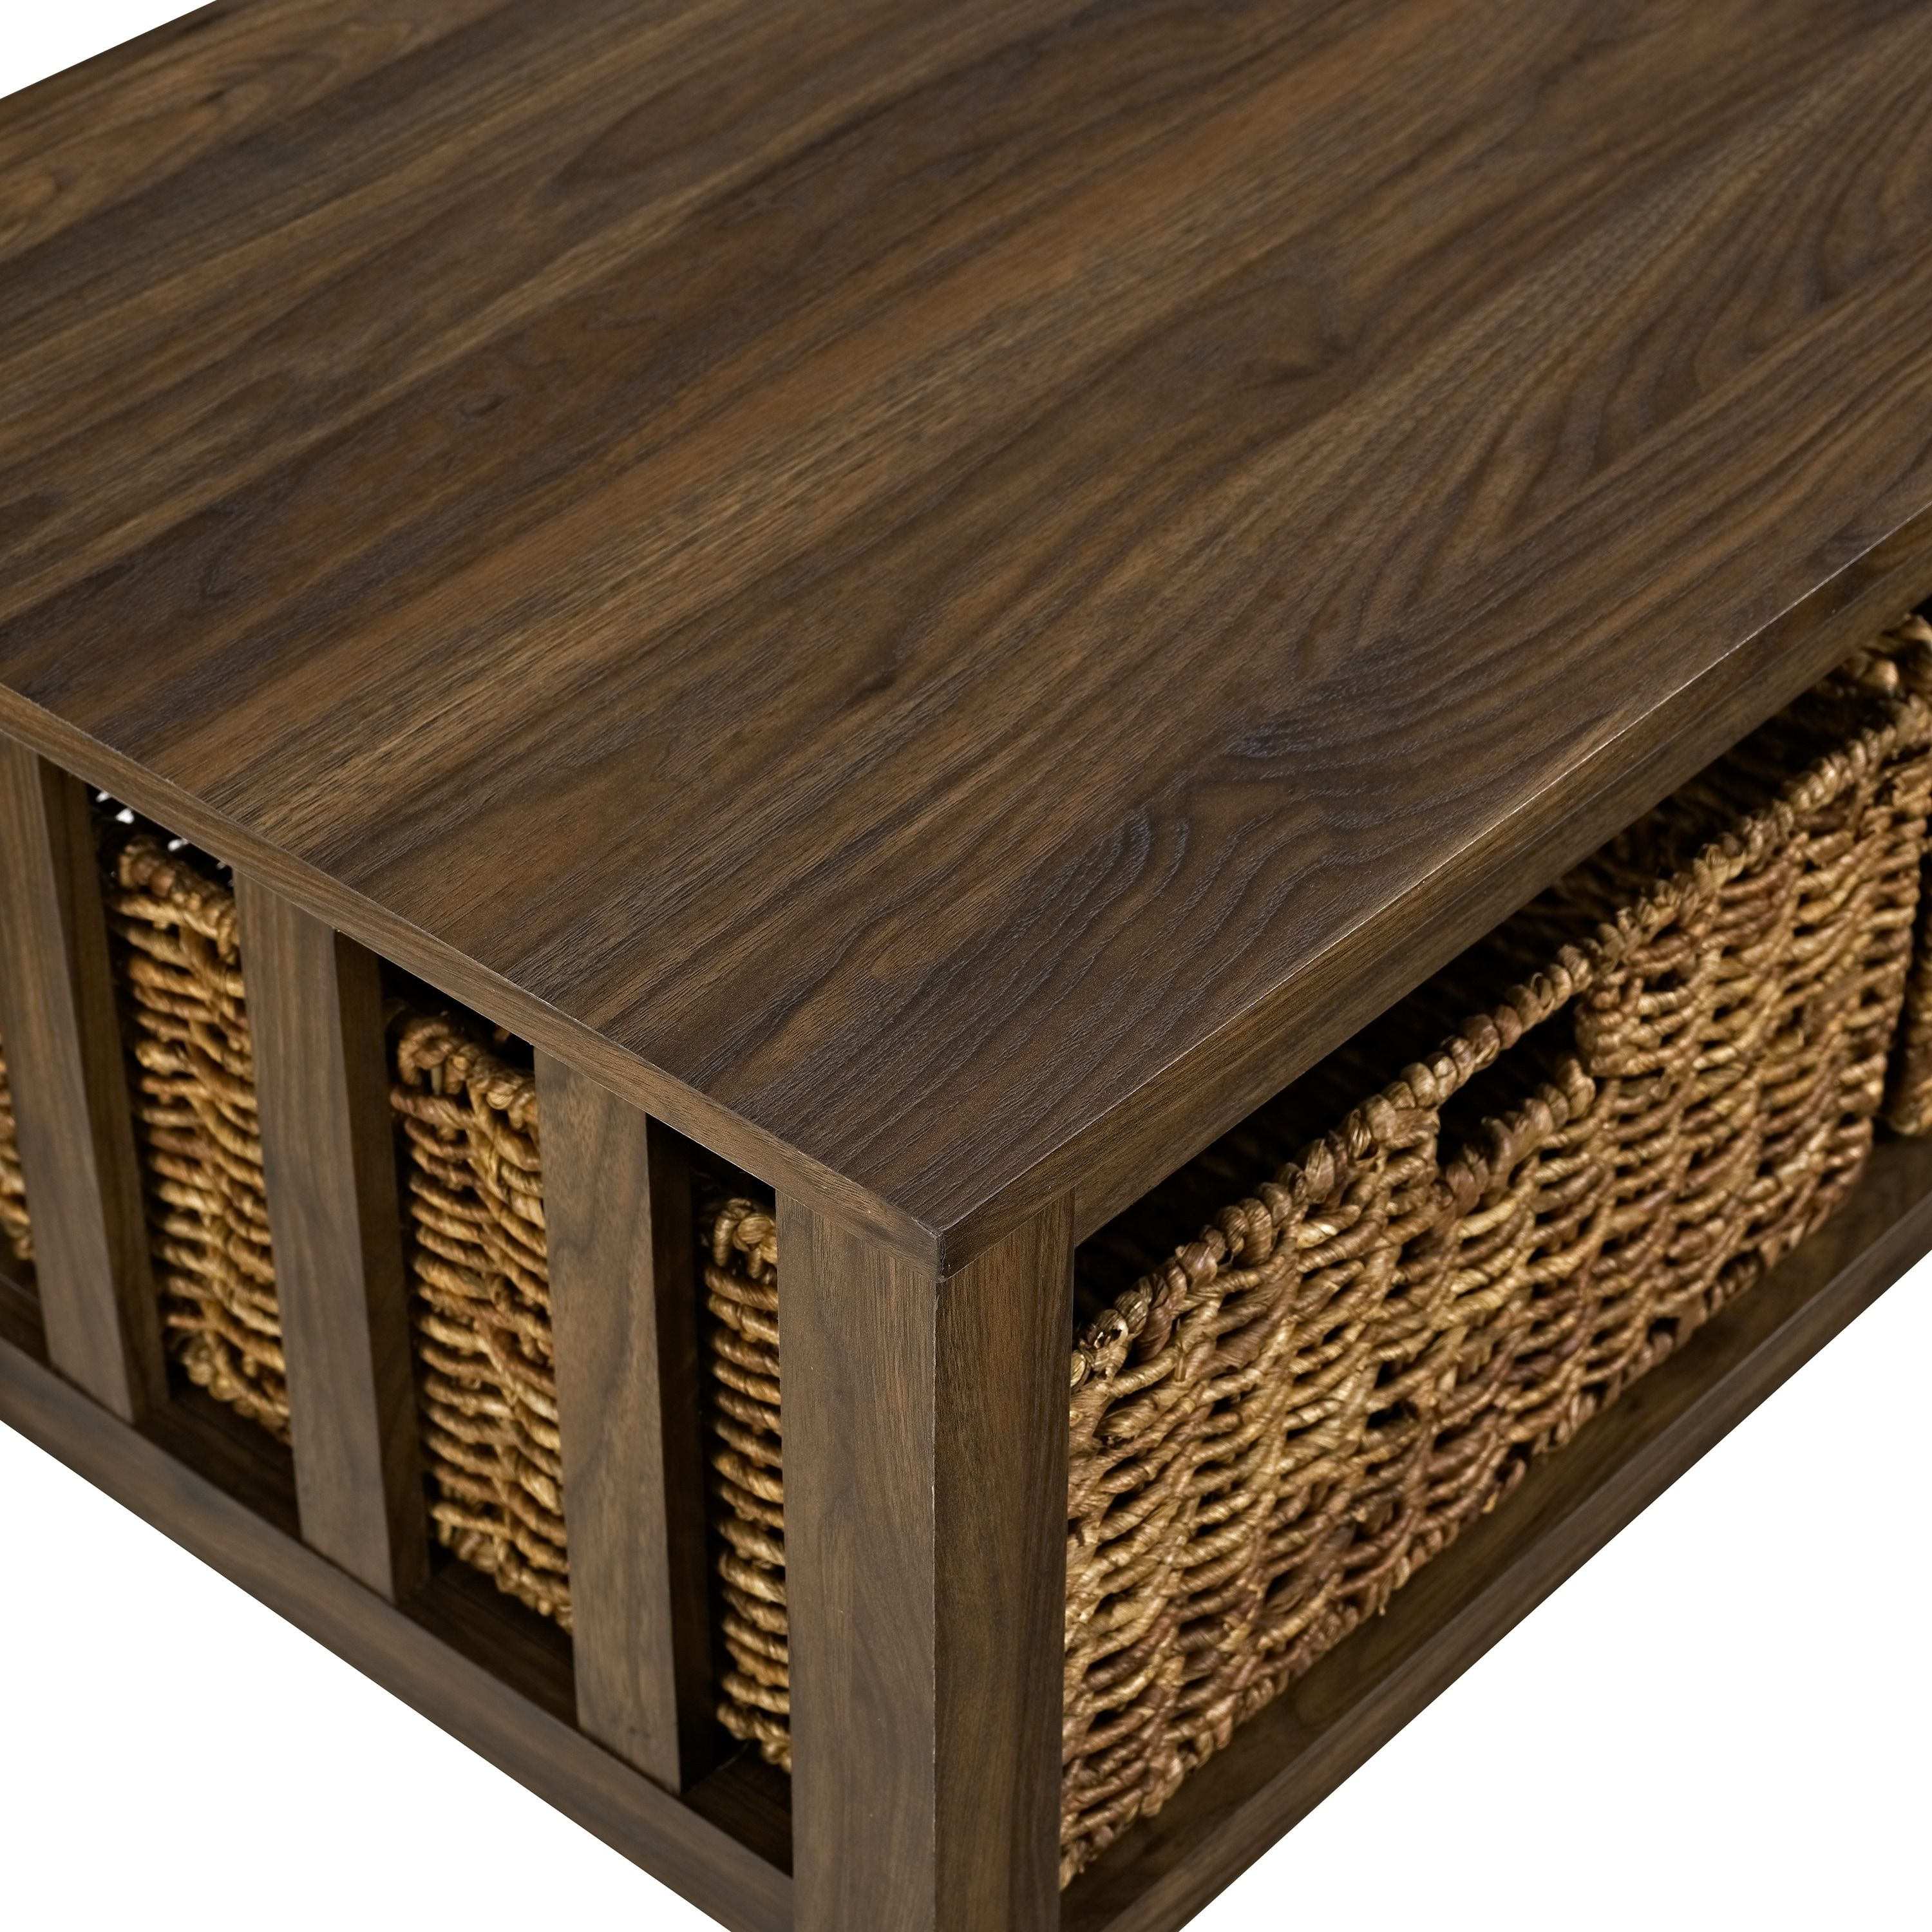 40 Inch Coffee Table With Wicker Storage Baskets With Images